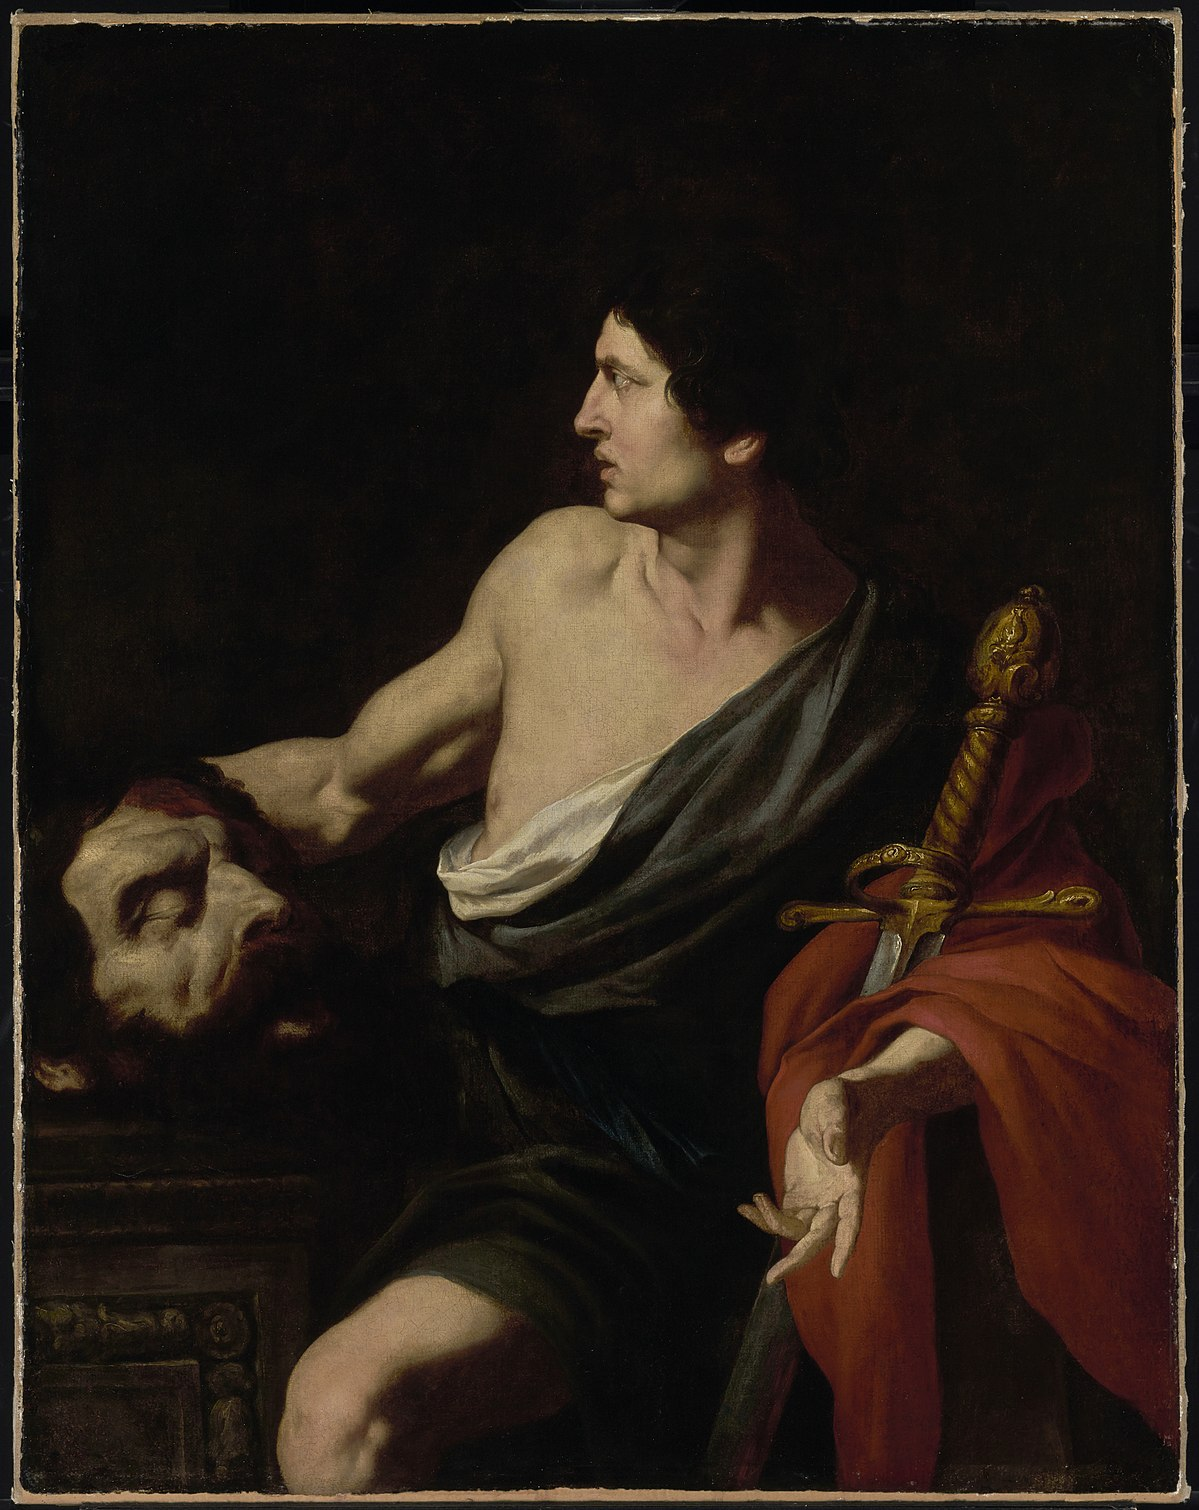 david with the head of goliath David with the head of goliath is a painting by the italian artist michelangelo merisi da caravaggio it resides in the galleria borghese, rome (caravaggio 1573 - 1610, date: 1610, oil on canvas, 125 × 100 cm, museum galleria borghese, rome.